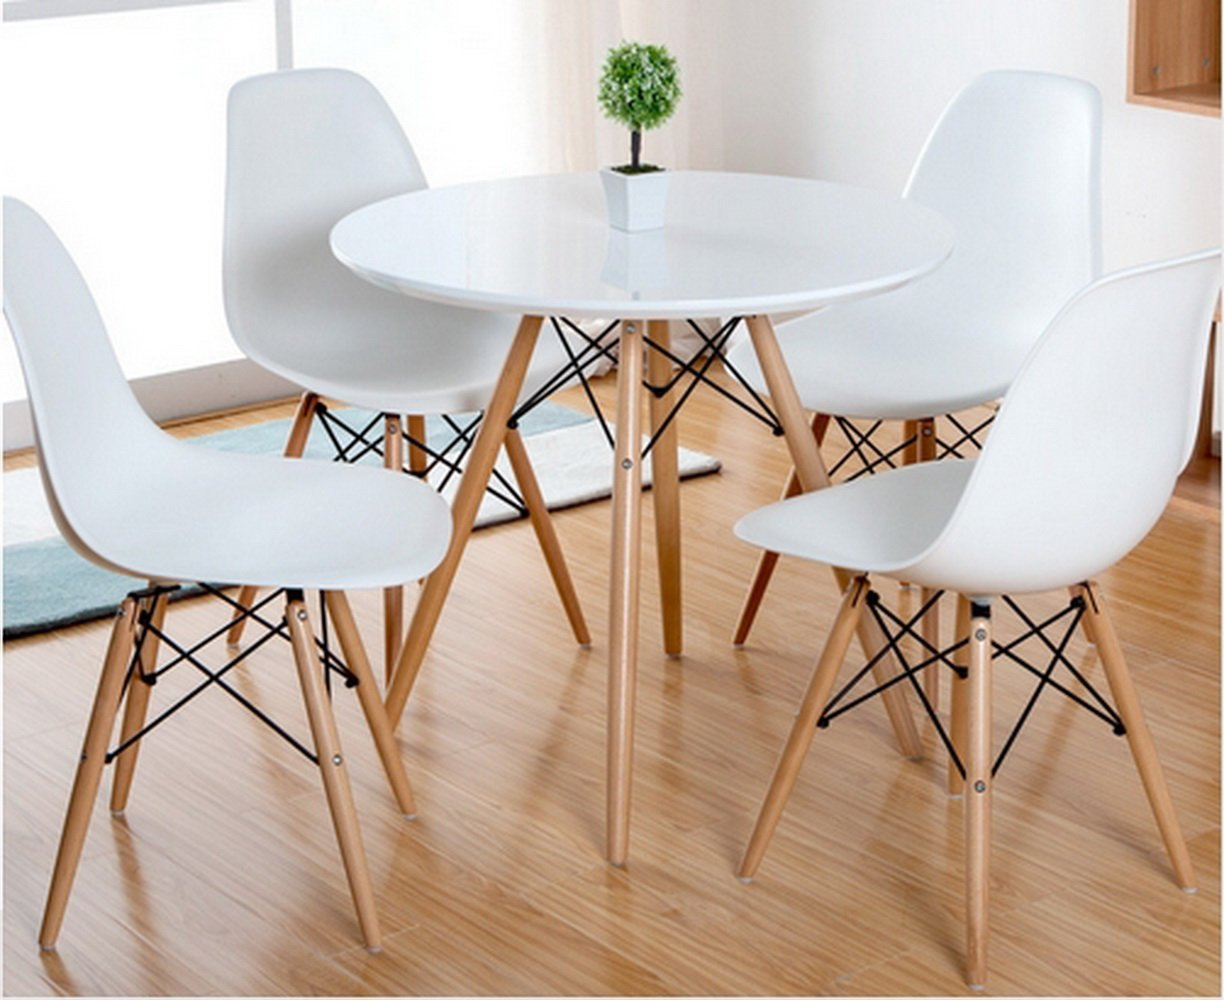 ASPECT Como Round Dining Table With Beech Wood Legs White Amazoncouk Kitchen Home